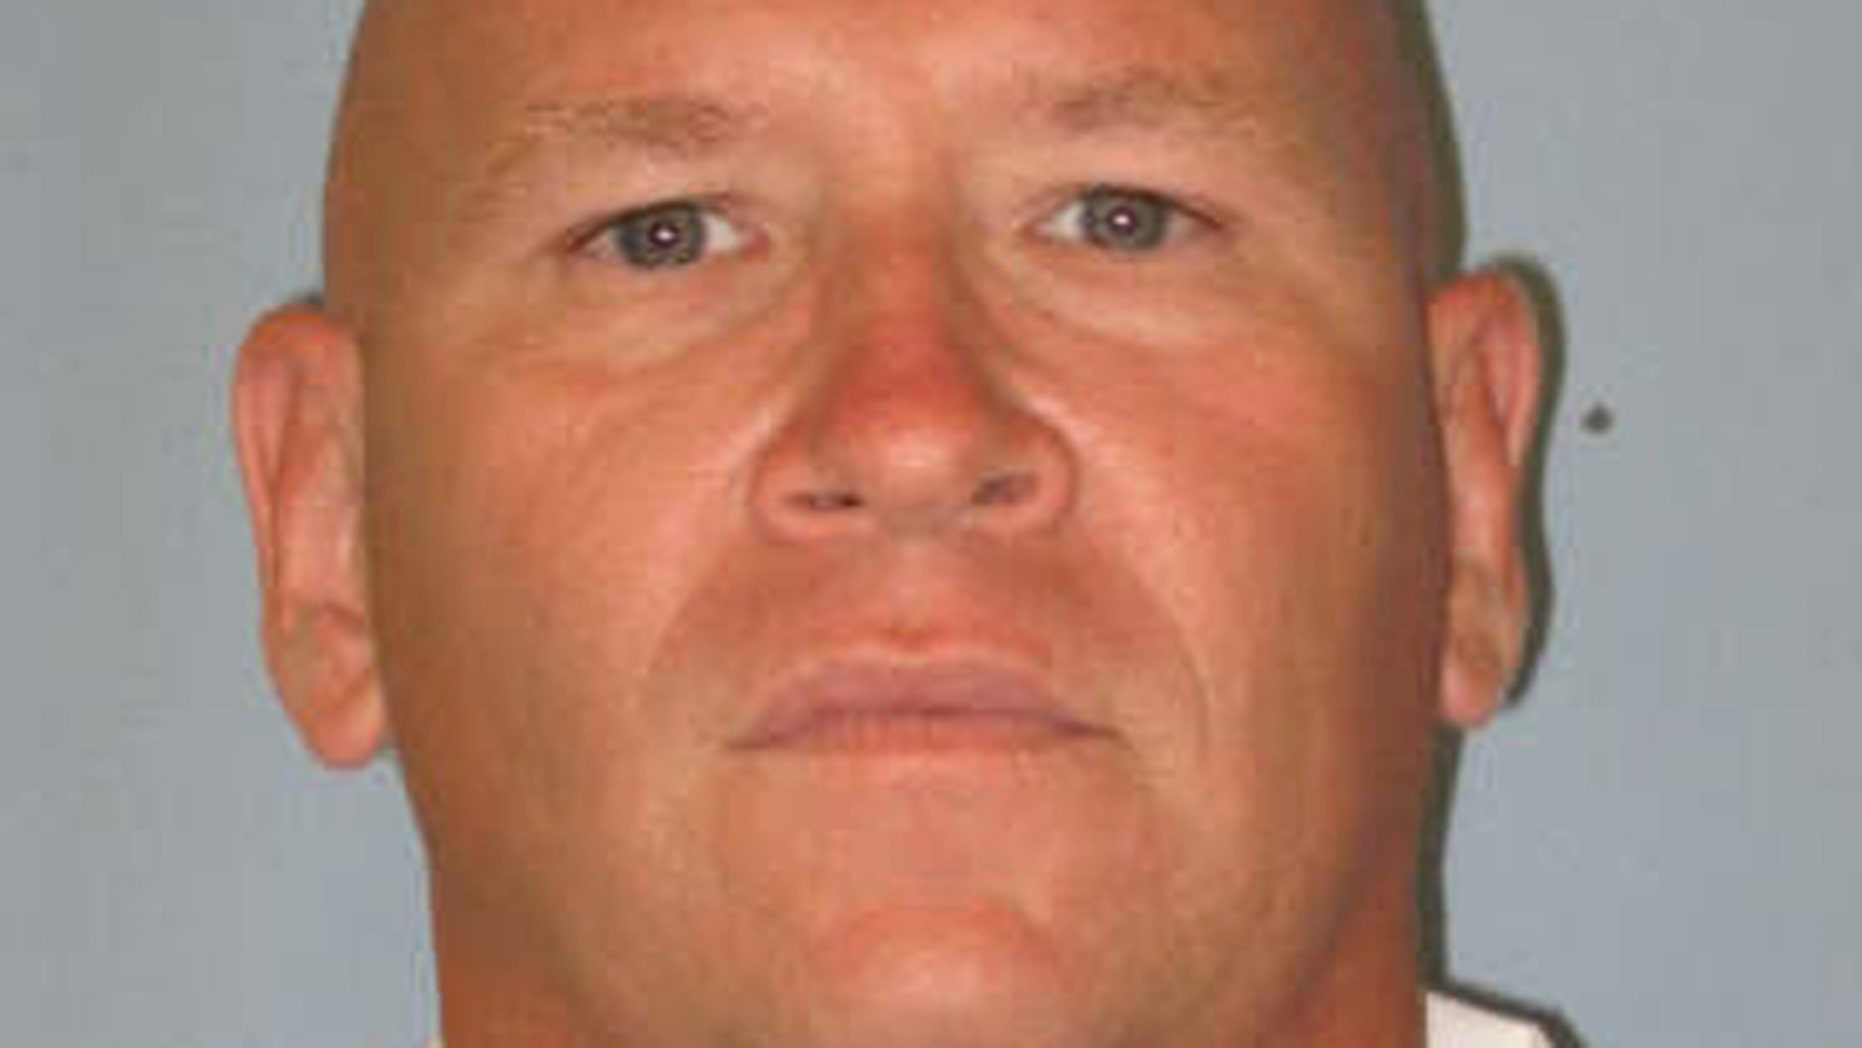 This photo, provided by the Alabama Department of Corrections, shows 42-year-old Timothy Richards.